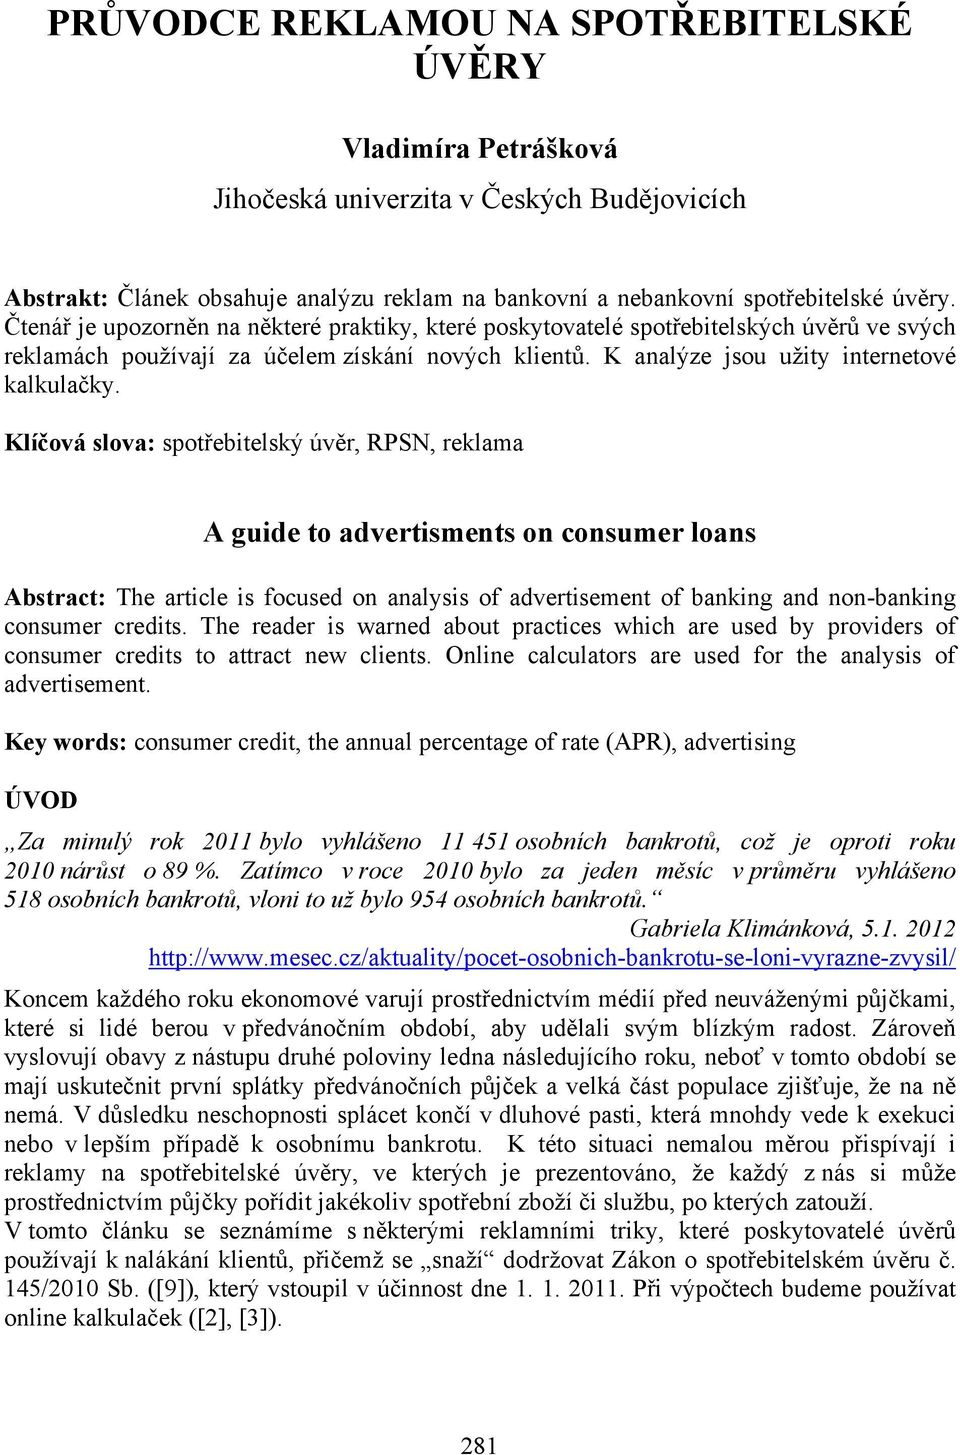 Klíčová slova: spotřebitelský úvěr, RPSN, reklama A guide to advertisments on consumer loans Abstract: The article is focused on analysis of advertisement of banking and non-banking consumer credits.